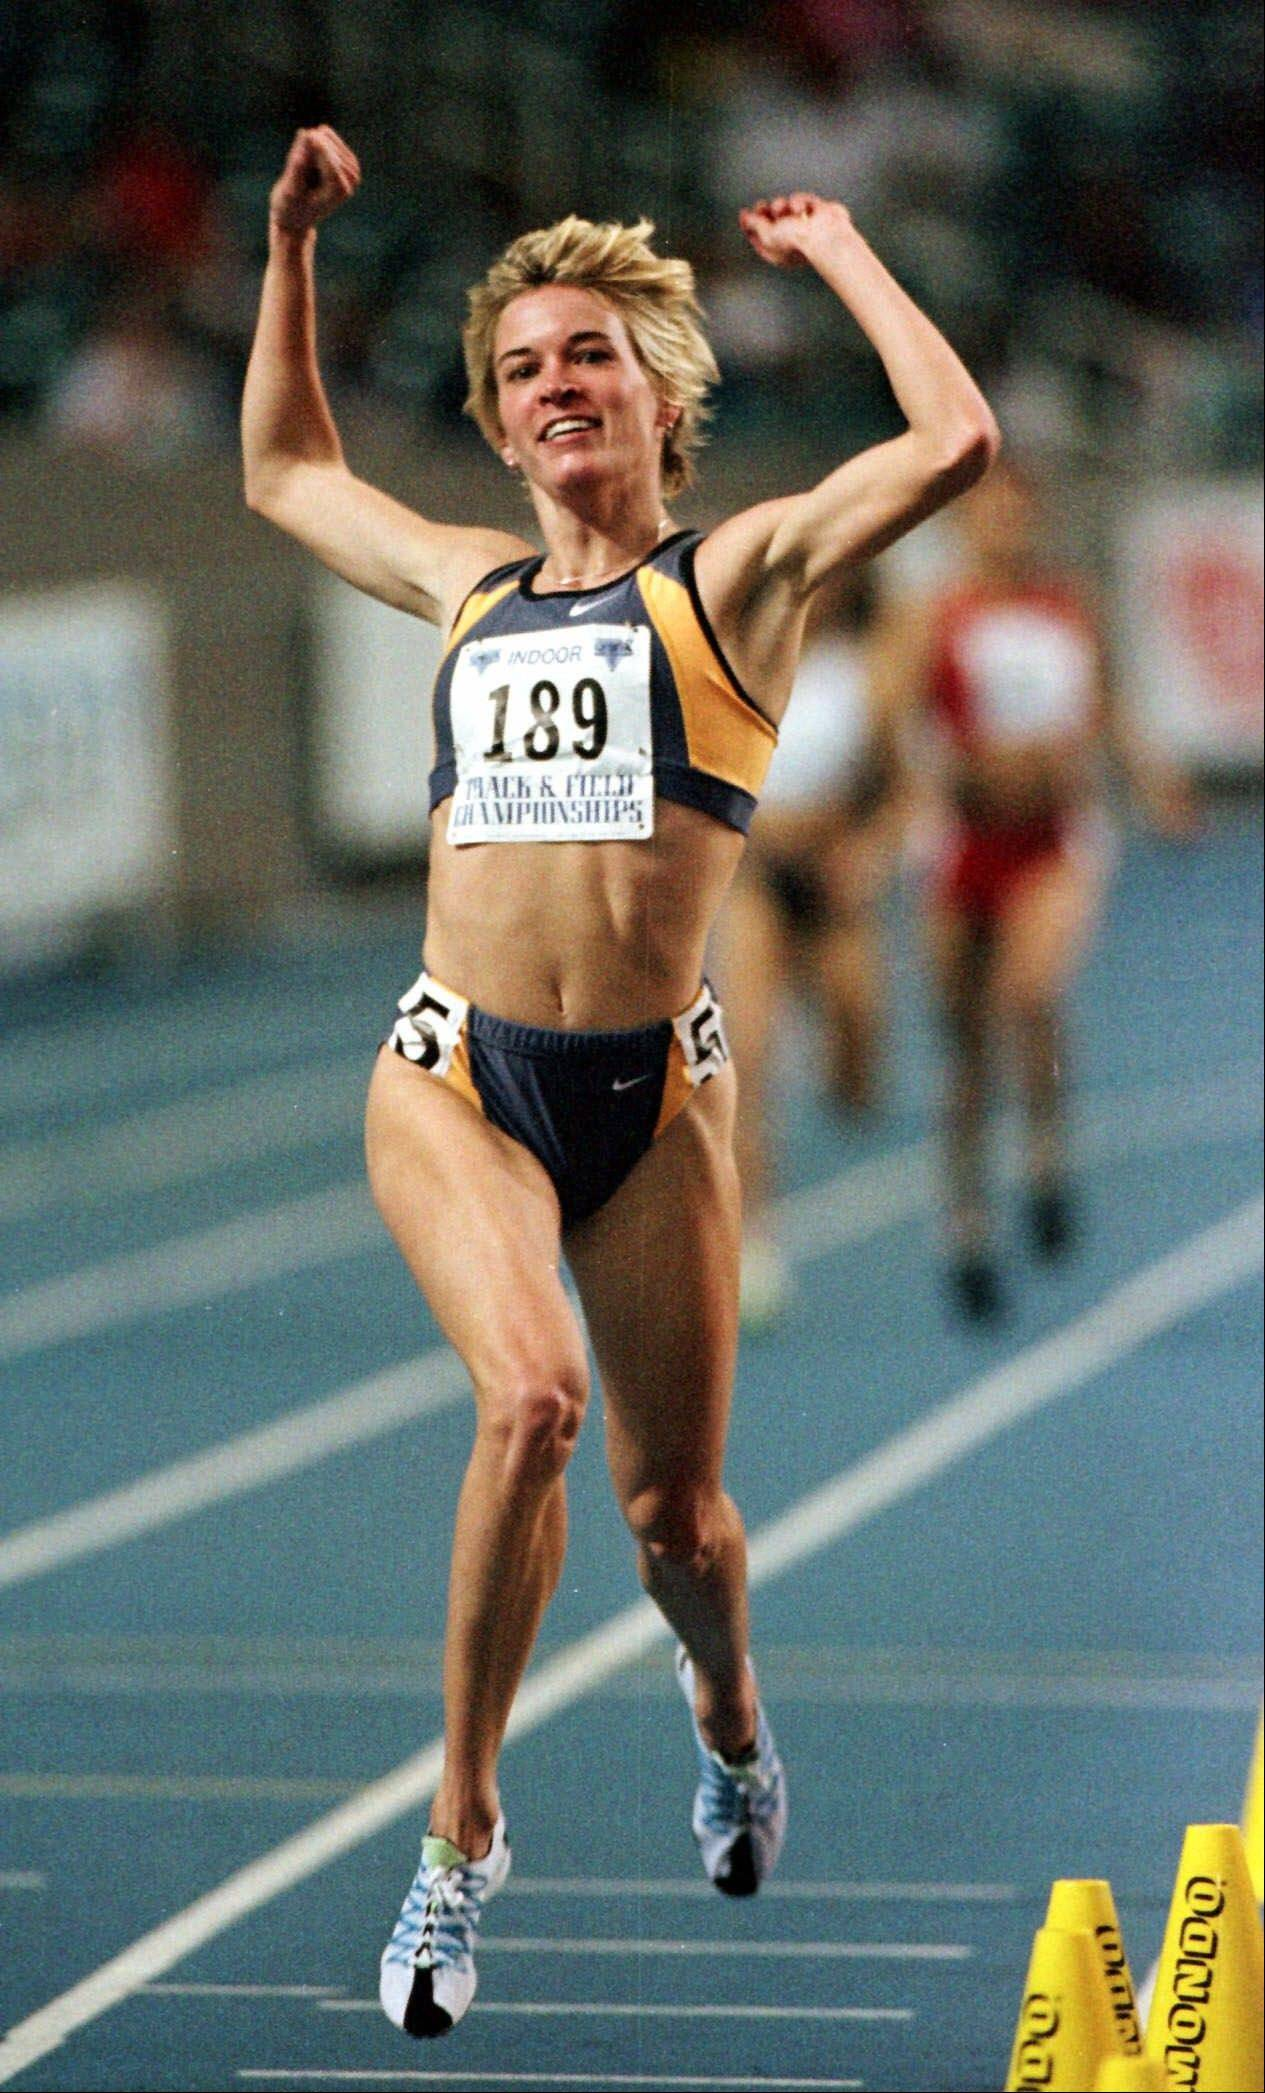 Suzy Hamilton reacts after winning the women's 1,500 meter run with a time of 4:13.96 at the USA Championships athletics meet in Atlanta in 1990. The three-time Olympian and Big Ten track icon has admitted leading a double life as an escort.